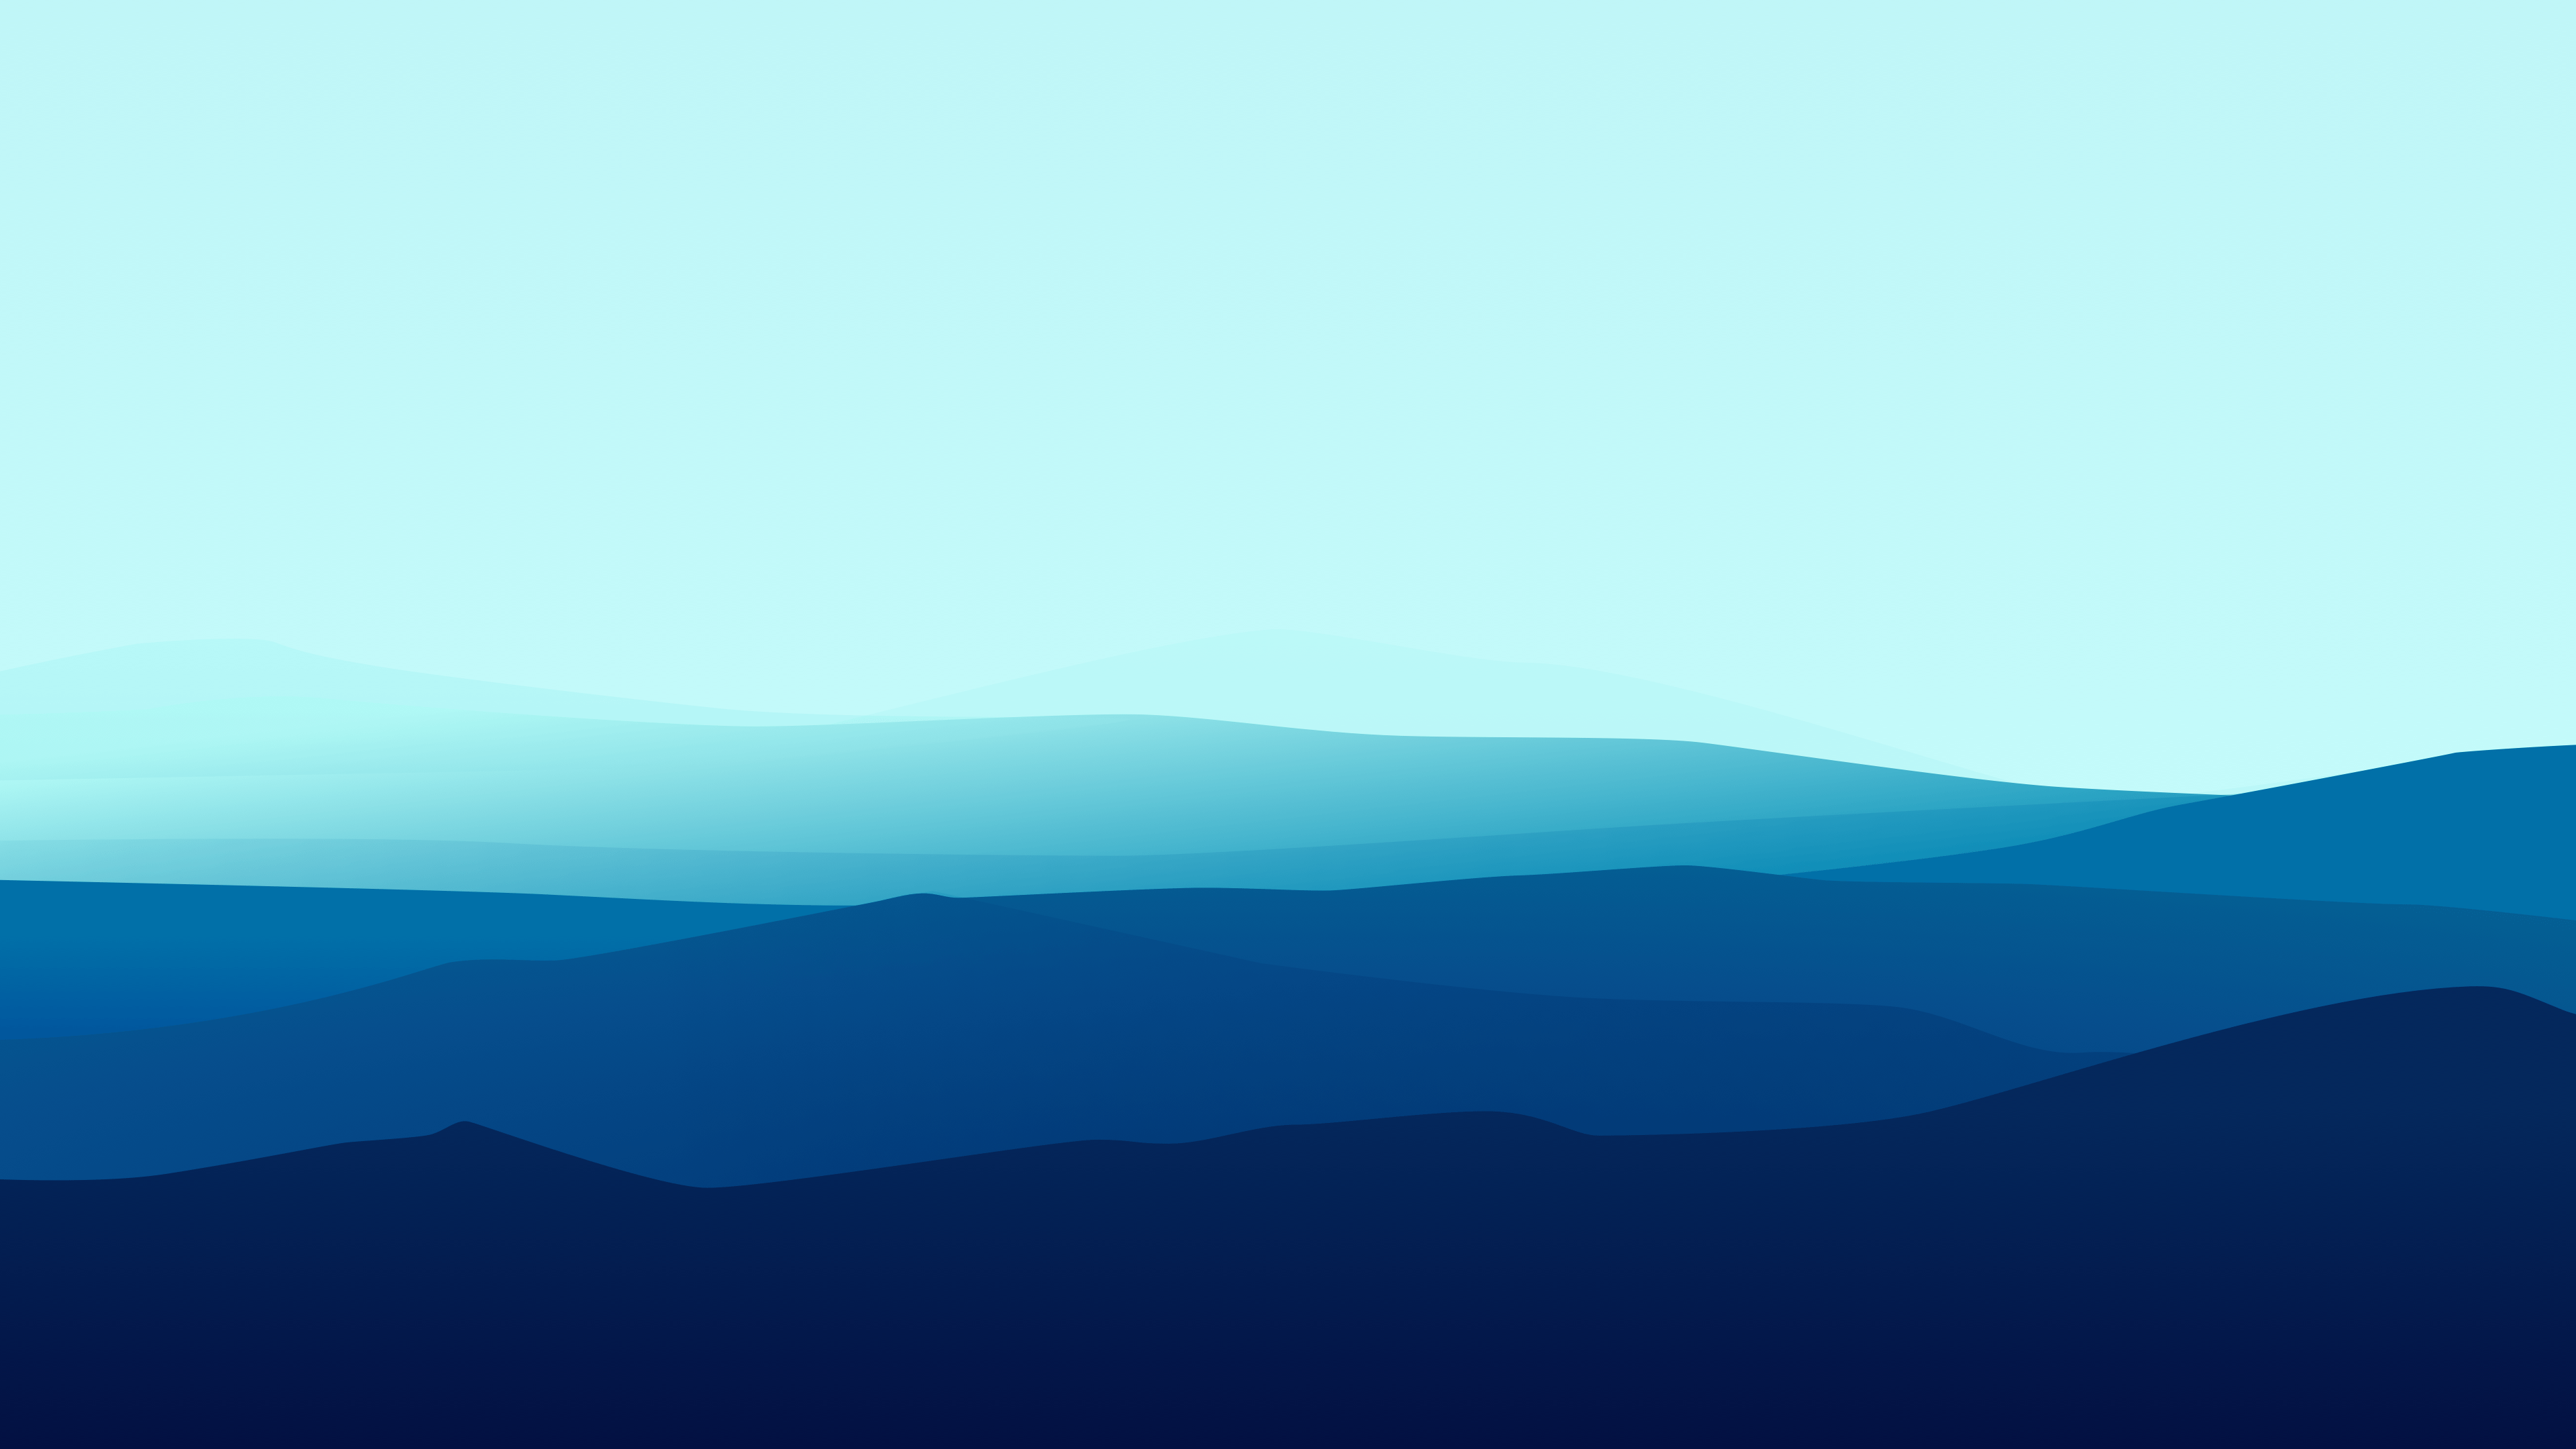 25 Minimalist QHD Wallpapers for your PC or MacBook - deTeched